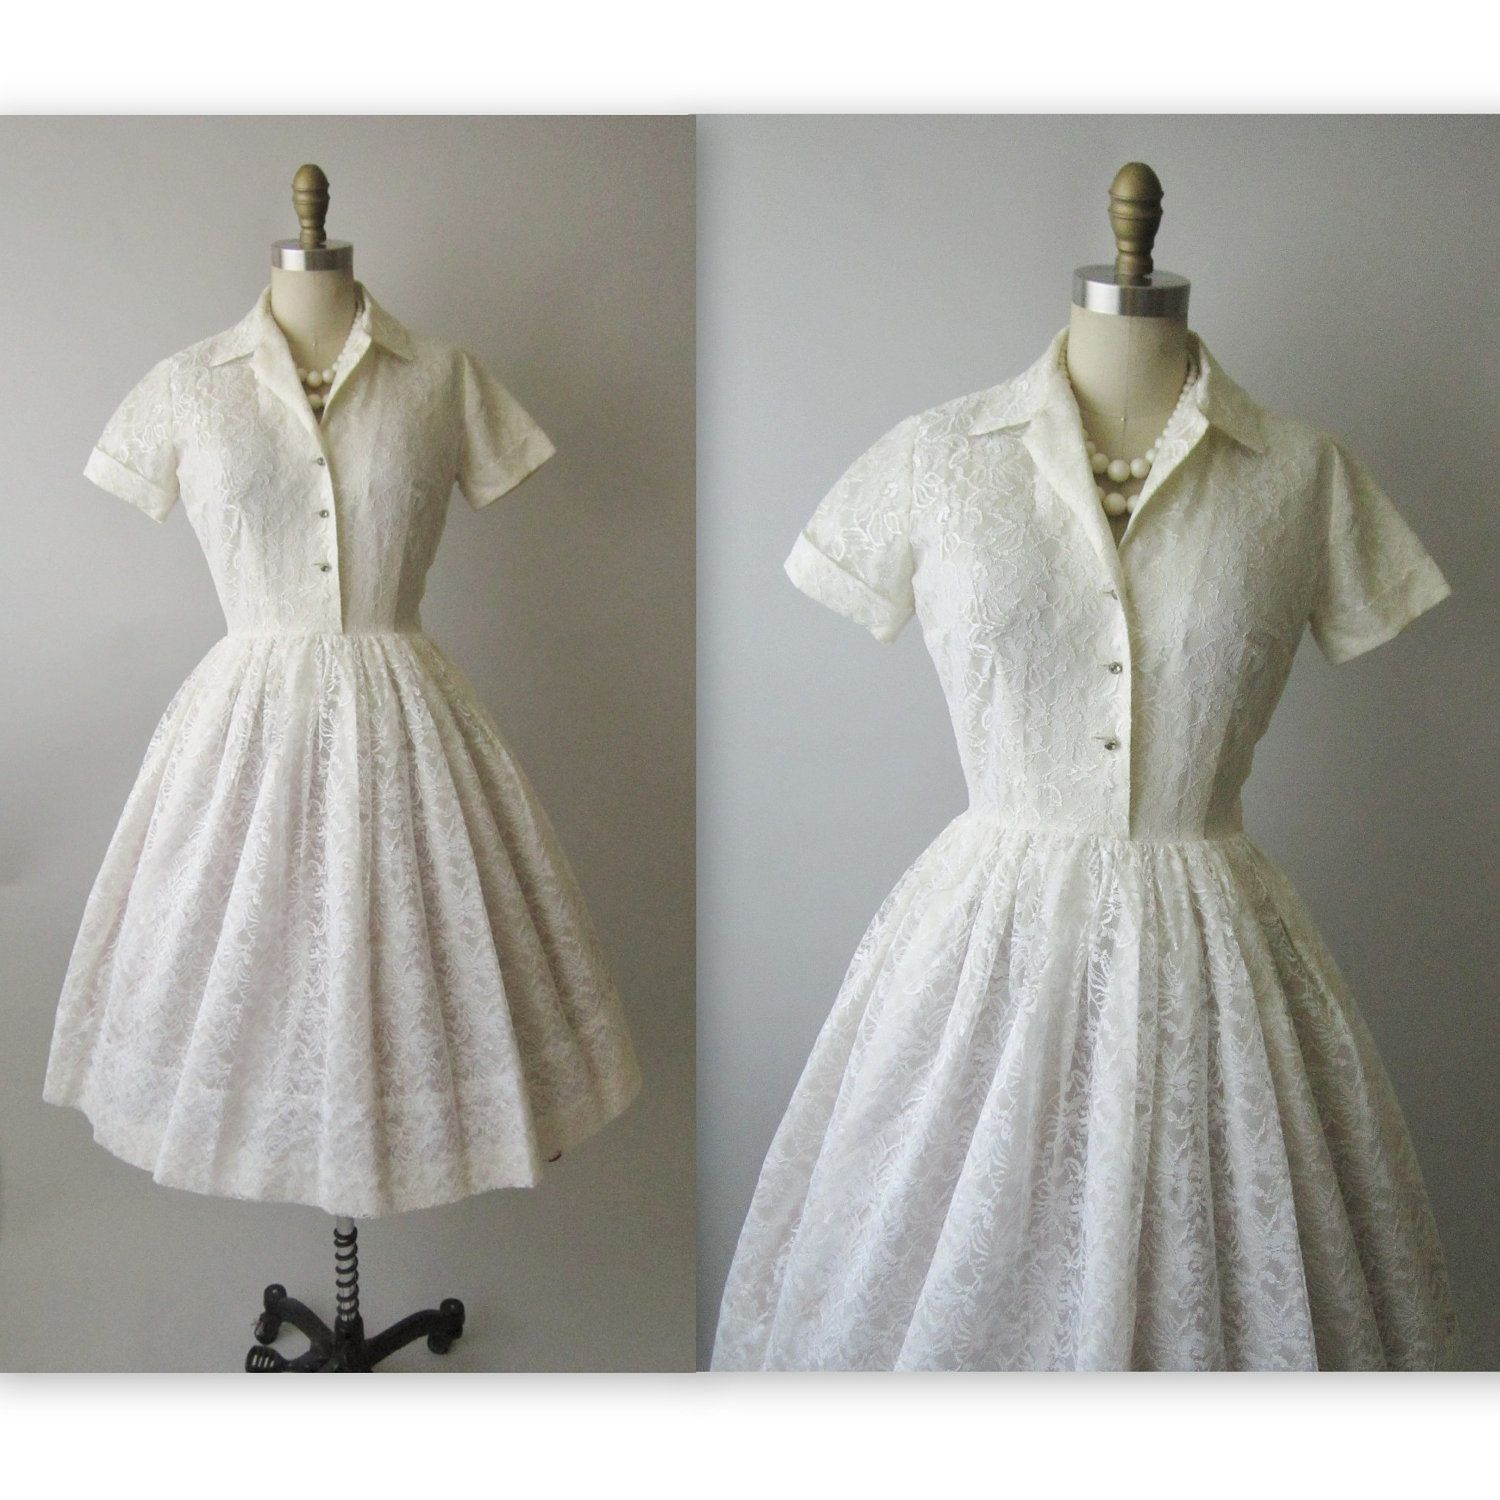 A Vintage Formal Outdoor Wedding In Virginia: 50's Lace Dress // Vintage 1950's White Lace Shirtwaist